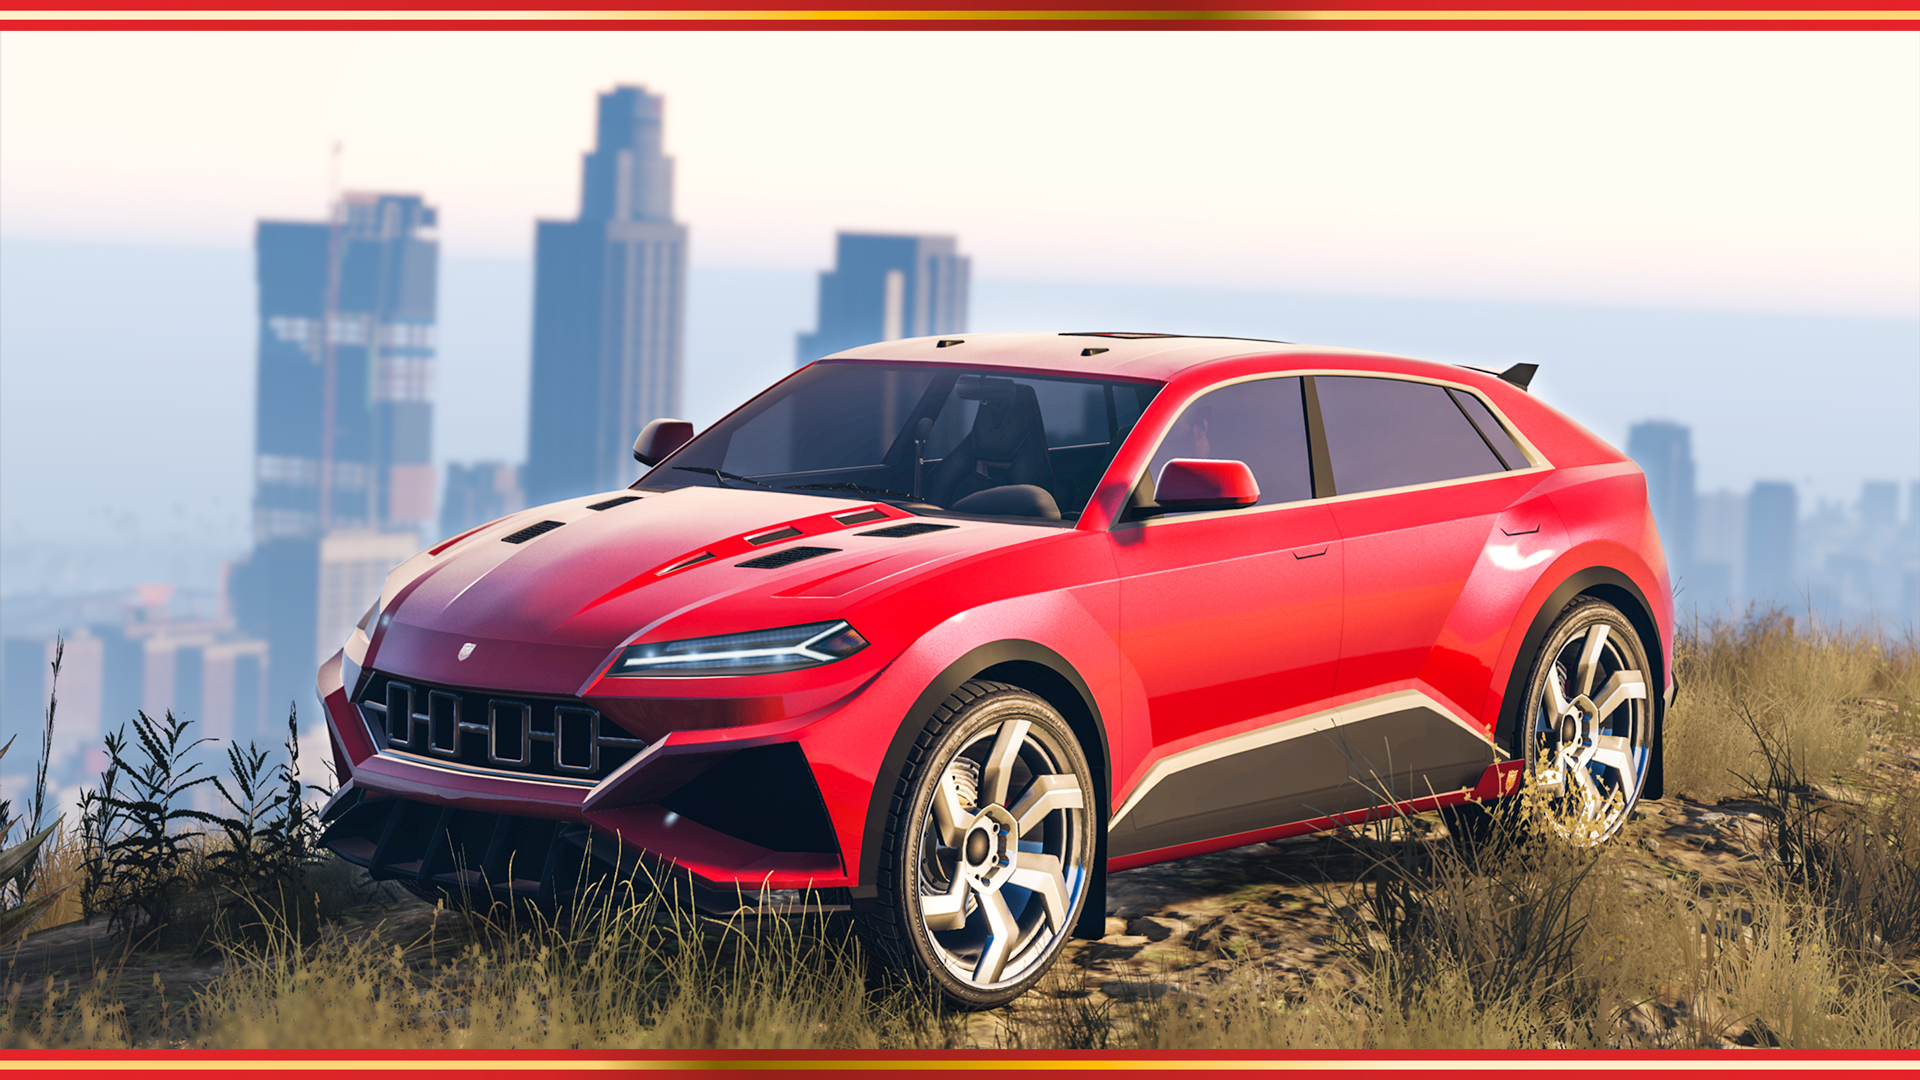 Gta 5 Christmas Gift 2019 GTA Online: New Car, Festive gifts, Snow, Arena war update & more